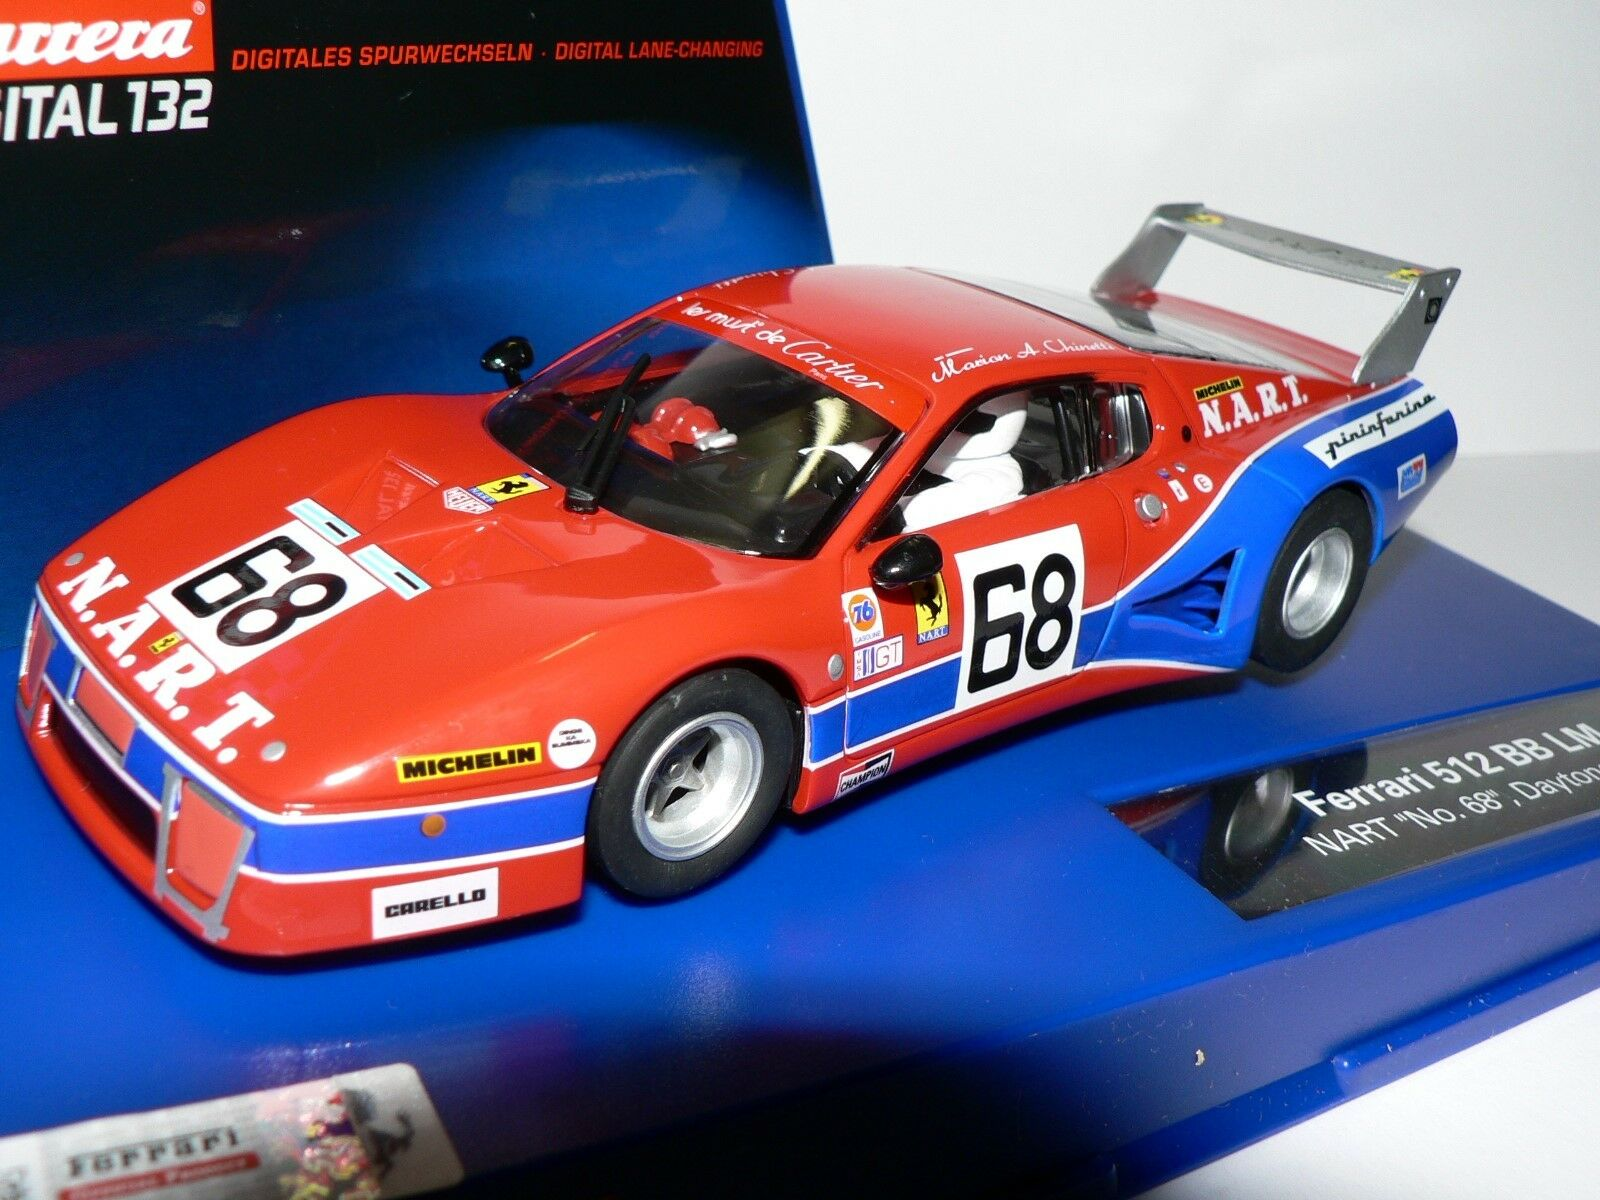 Carrera Digital132 30576 Ferrari 512 Bb Lm Nart No. 68 Daytona 1979 New